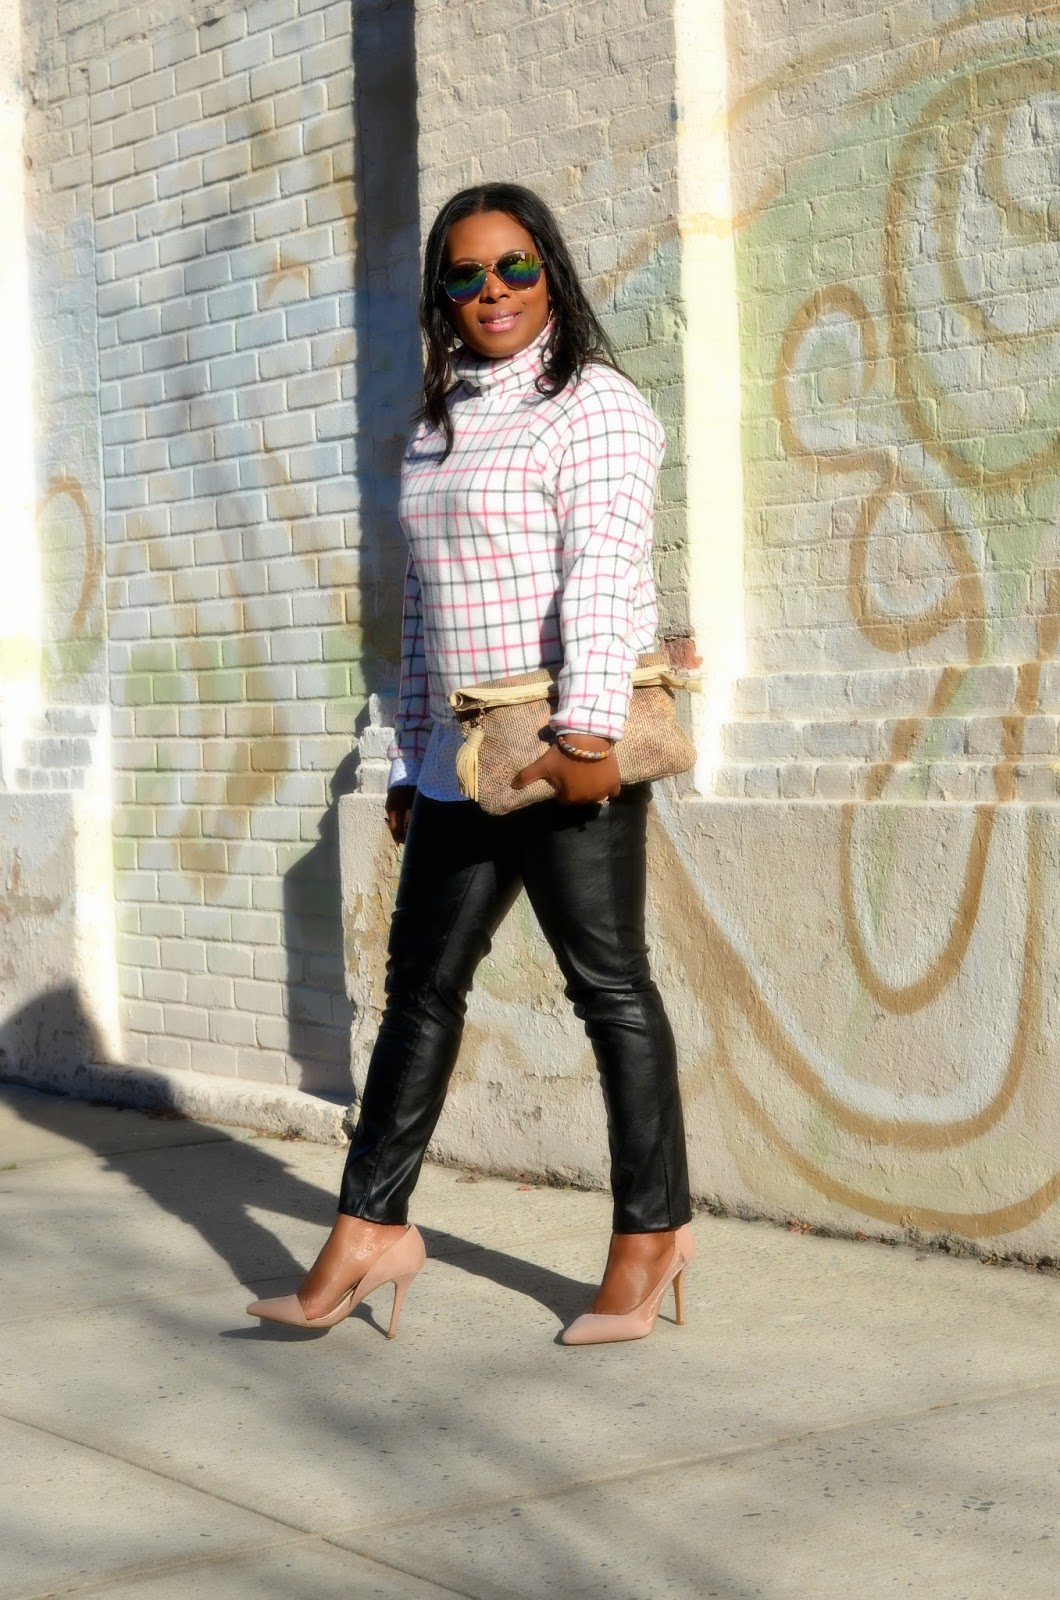 Express Pink Coat. Blank NYC Vegan Leather Skinny Jeans.Button-down.Shirt.HighNeck.MicroFleece.Top.Snakeskin.Bebe Snakeskin.Clutch.Adelia.D'orsay Nude Pumps